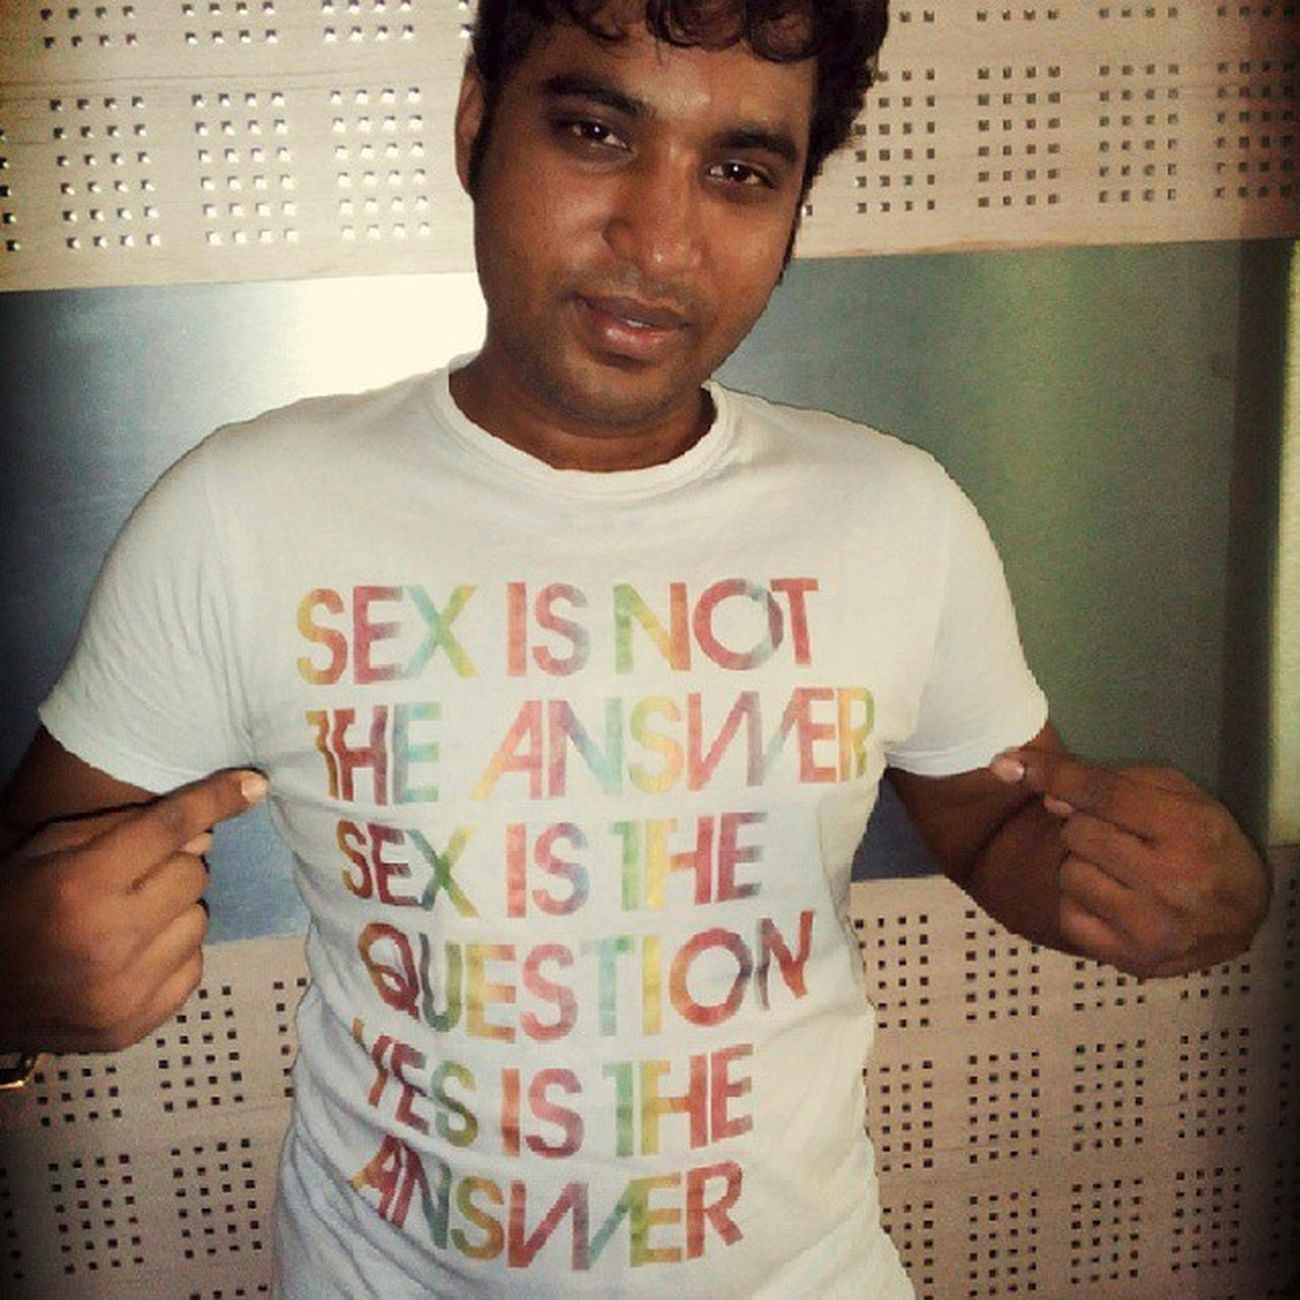 Sex_is_not_the_answer Sex_is_the_question Yes_is_the_answer . :D ;)